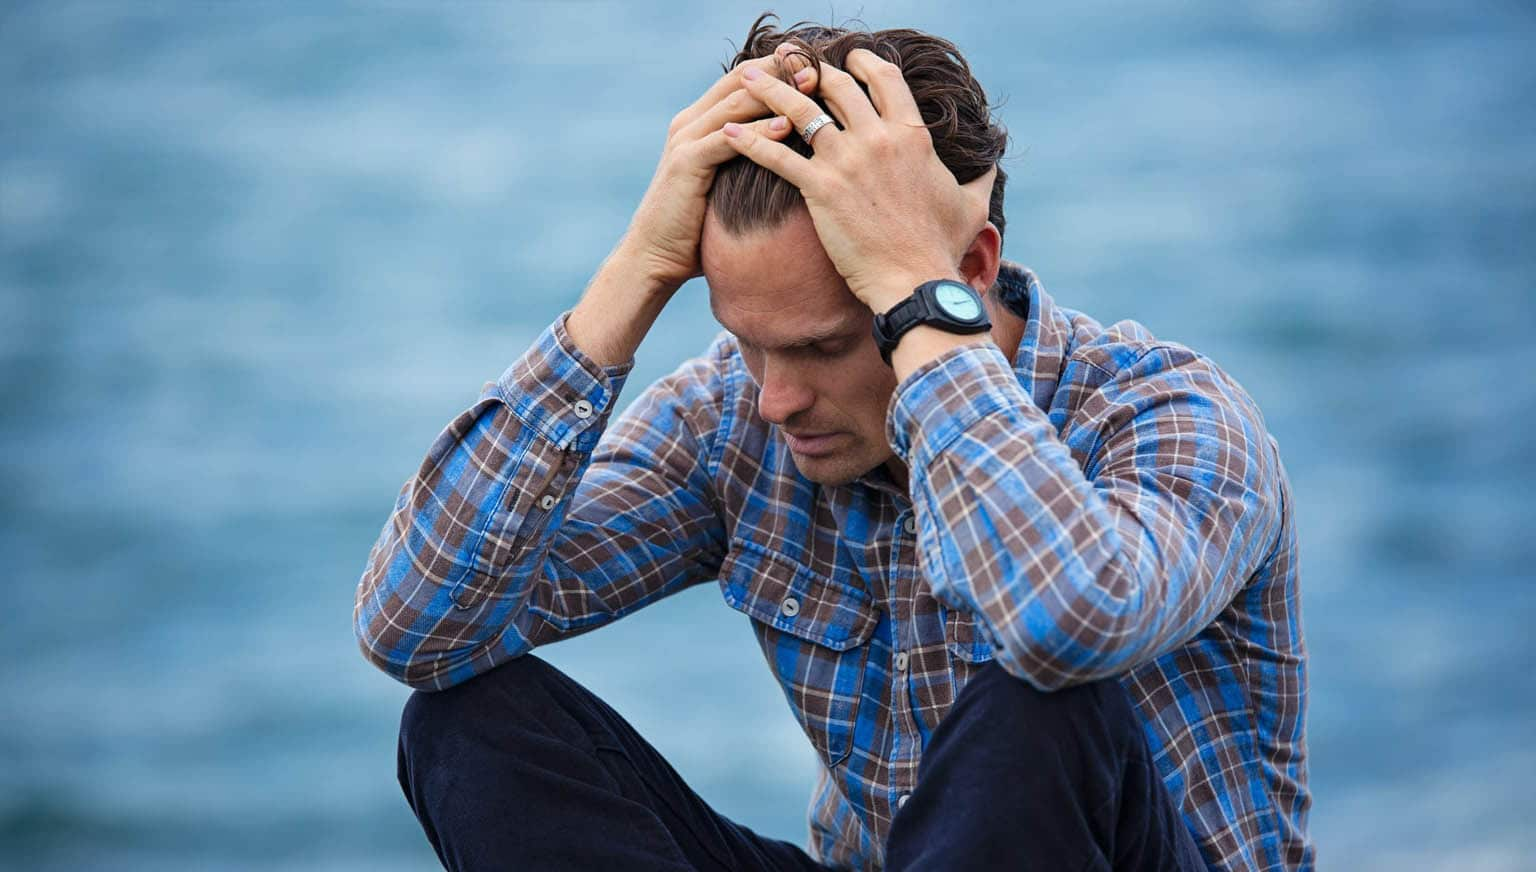 Anger Management Therapy and Counseling, The Relationship Center of Michigan